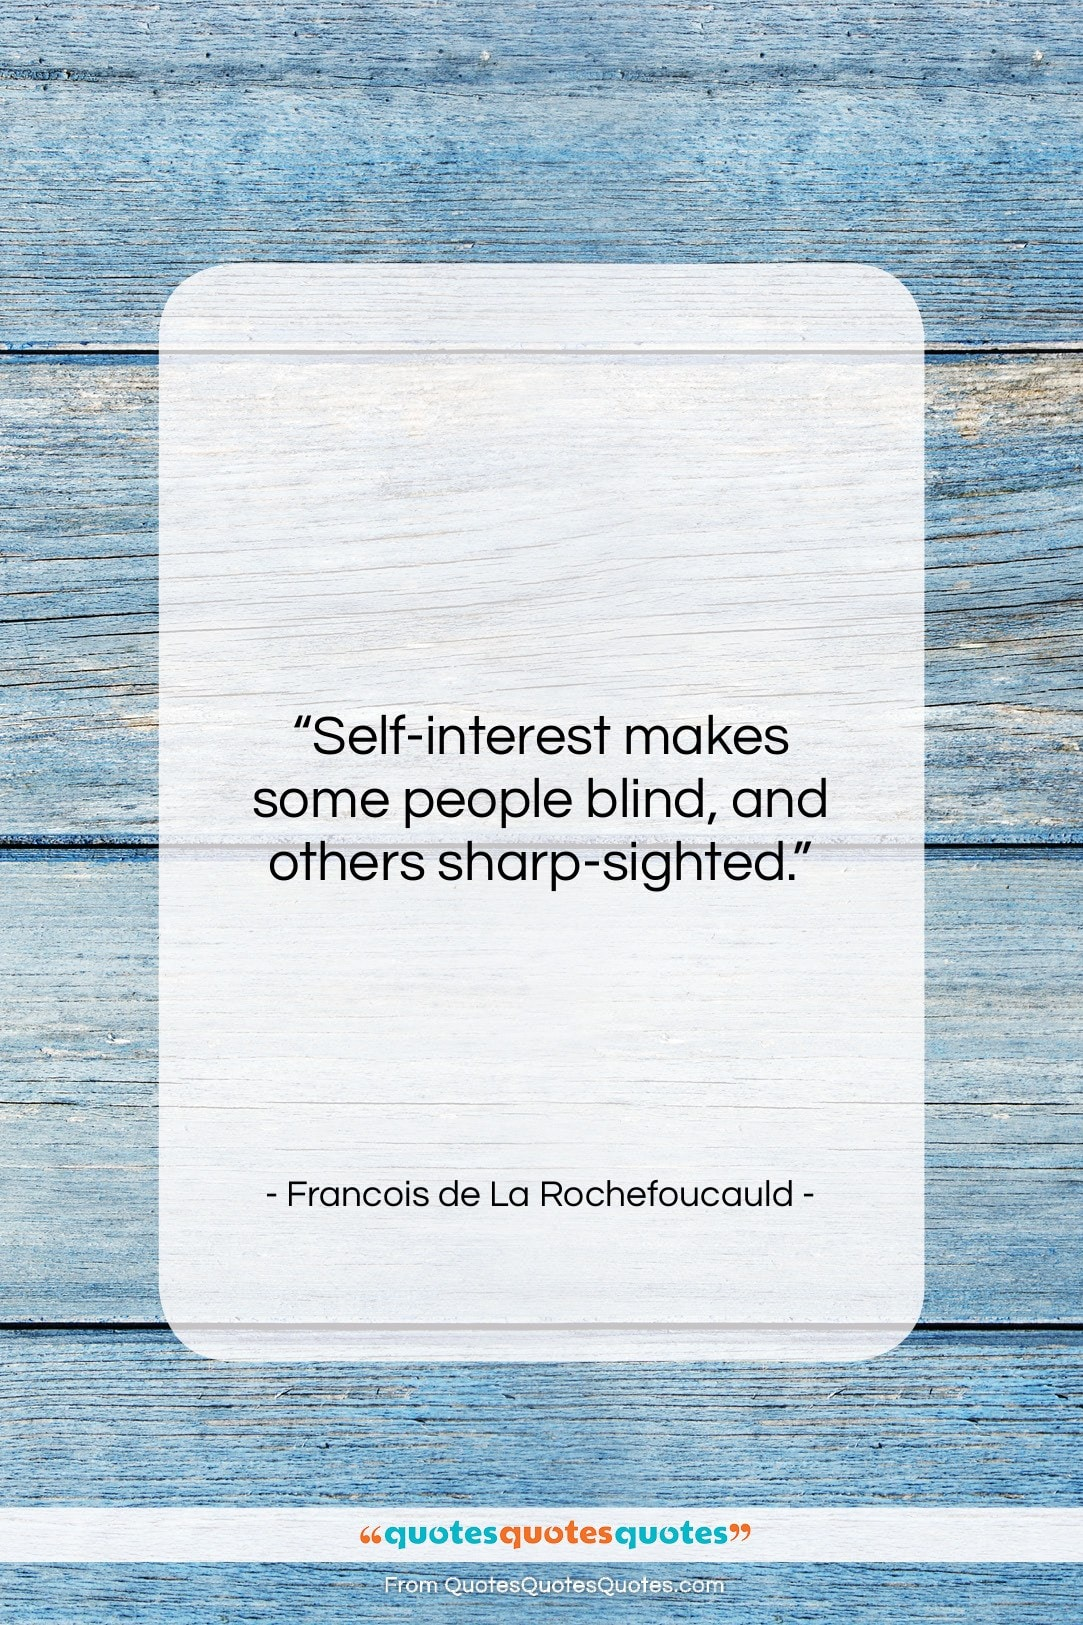 """Francois de La Rochefoucauld quote: """"Self-interest makes some people blind, and others…""""- at QuotesQuotesQuotes.com"""